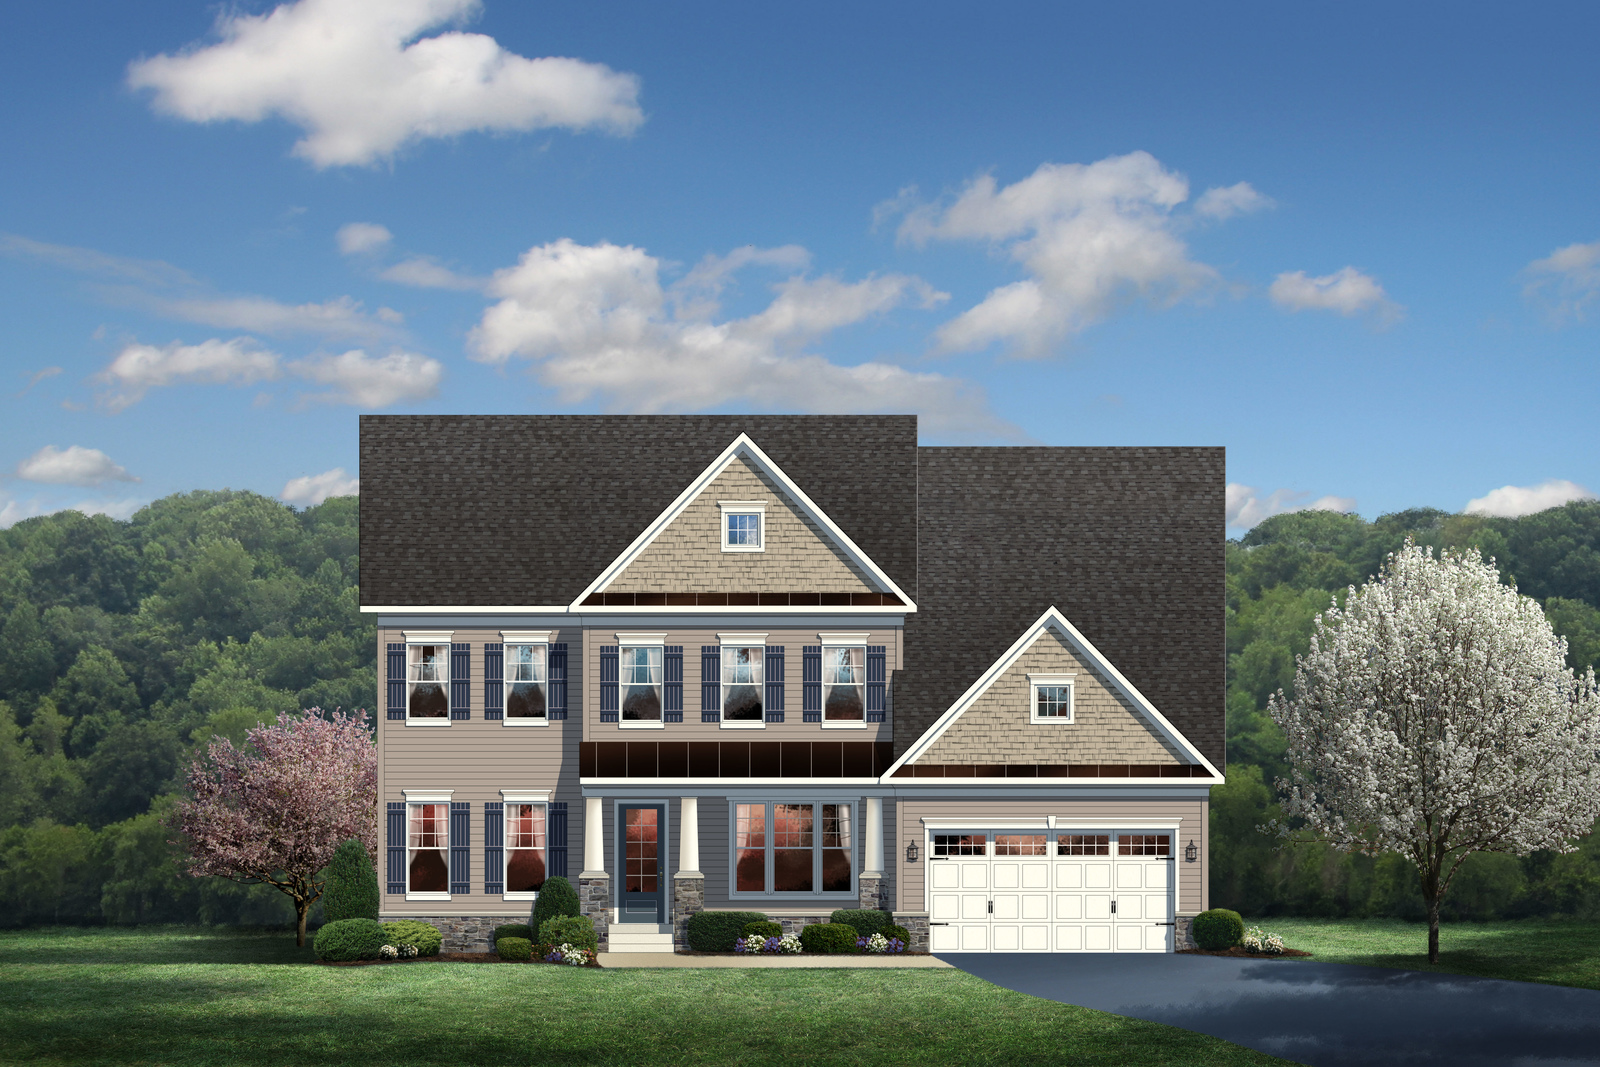 New remington place ii home model for sale heartland homes for Heartland homes pittsburgh floor plans